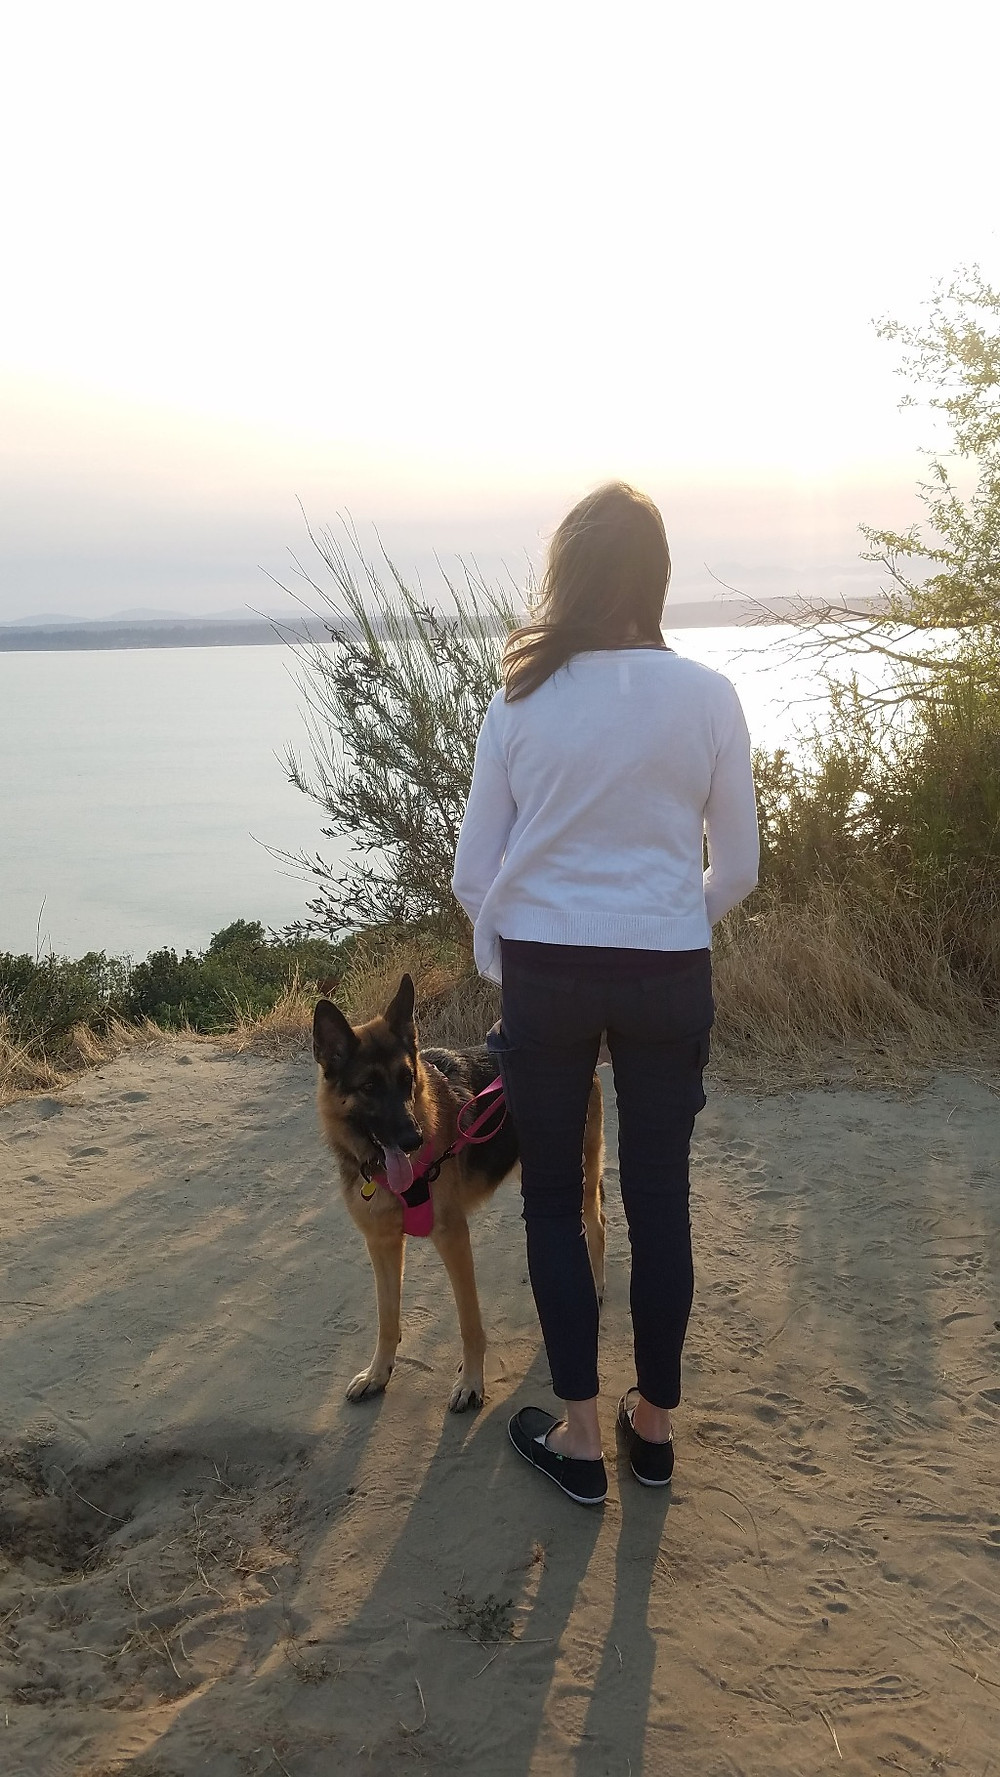 Indi and Doreen overlooking the water